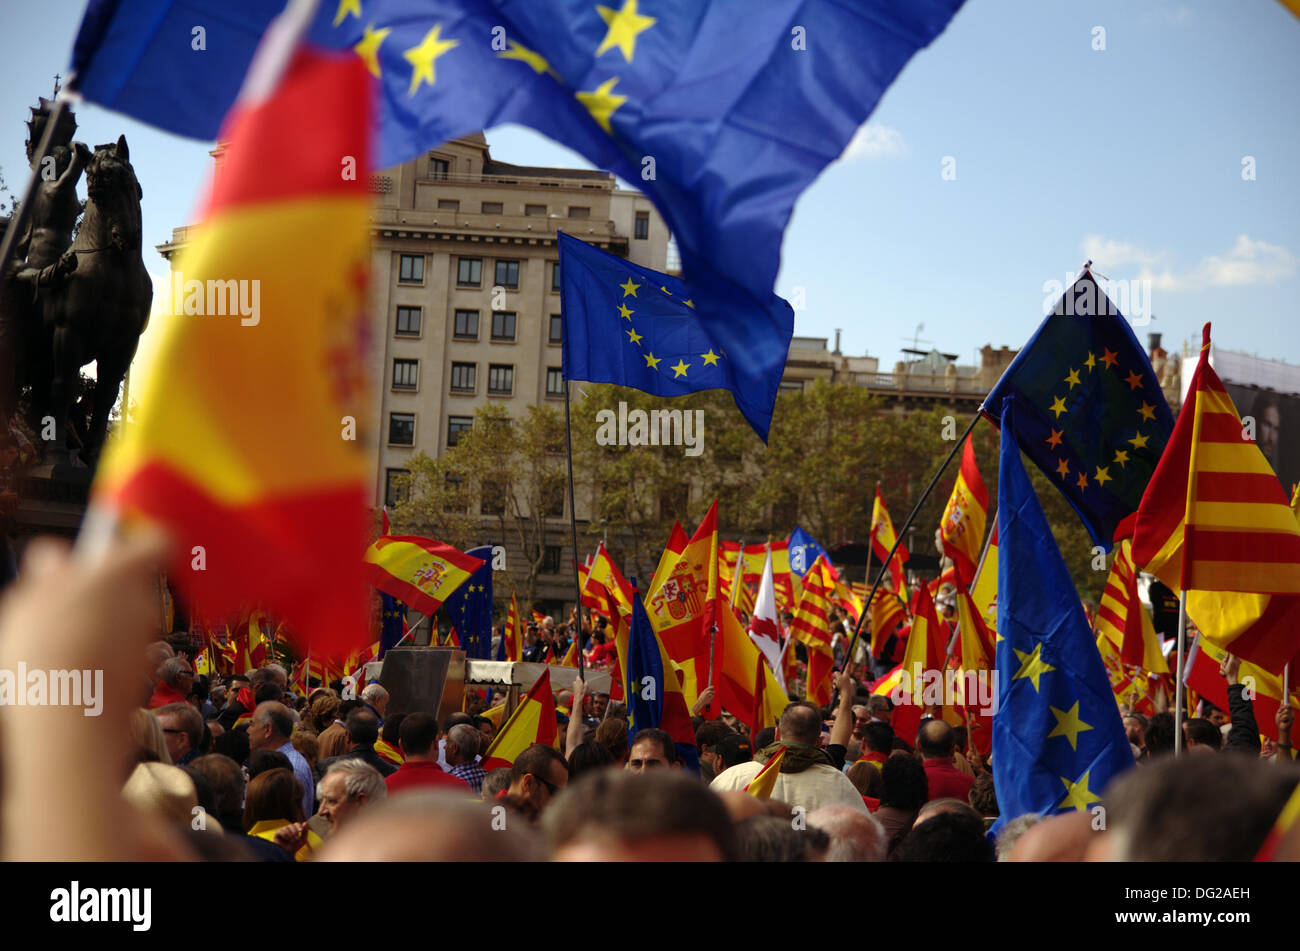 Barcelona, Spain. 12th Oct, 2013. Celebration of Columbus Day in Barcelona. Festive demonstration against the referendum for independence of Catalonia from the rest of Spain in the center of Barcelona. In the image, spanish, catalonian & EU flags. Credit:  Fco Javier Rivas Martín/Alamy Live News - Stock Image